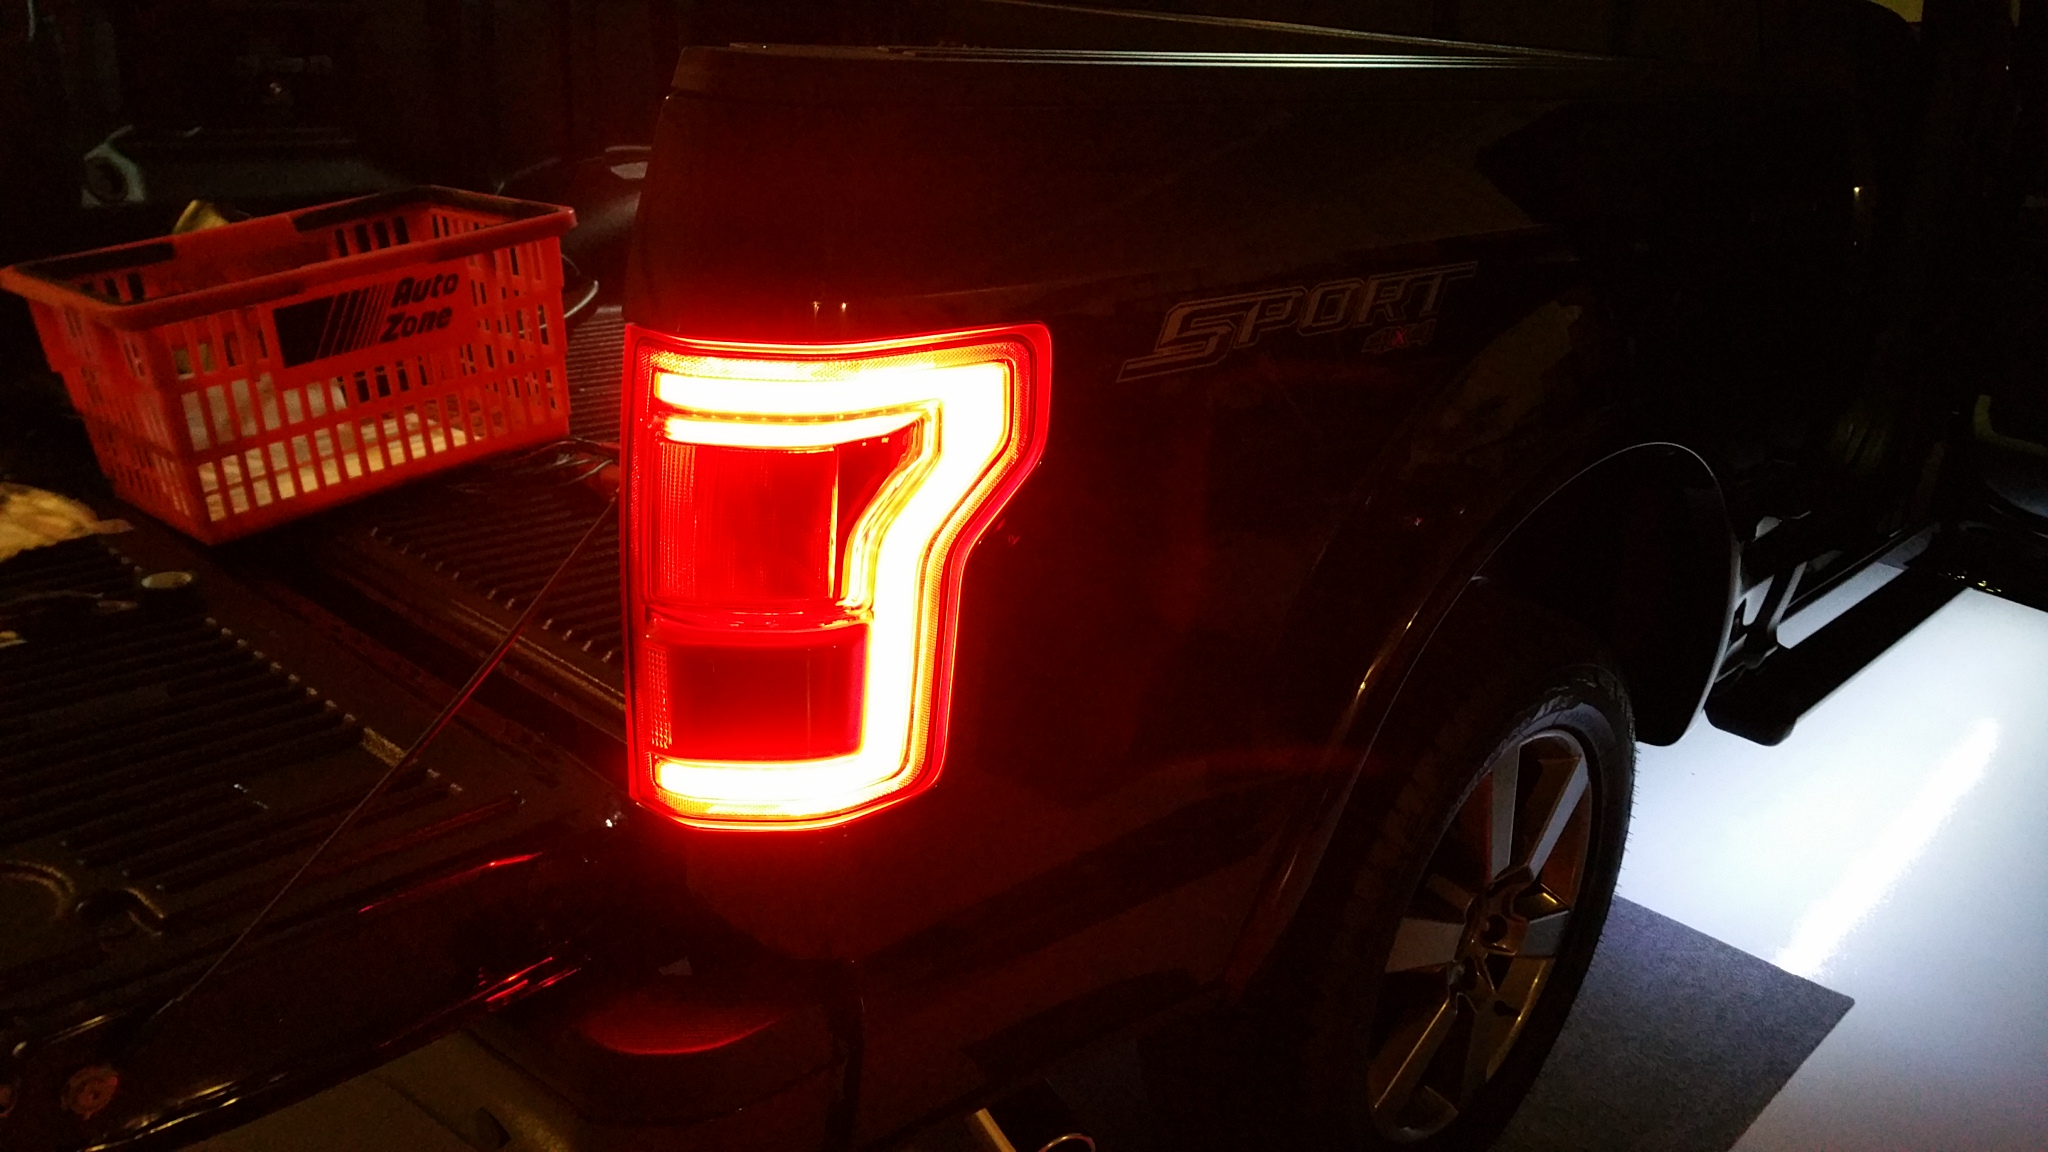 Light Wiring Diagram On Tail Light Wiring Diagram For 2012 Ford F150